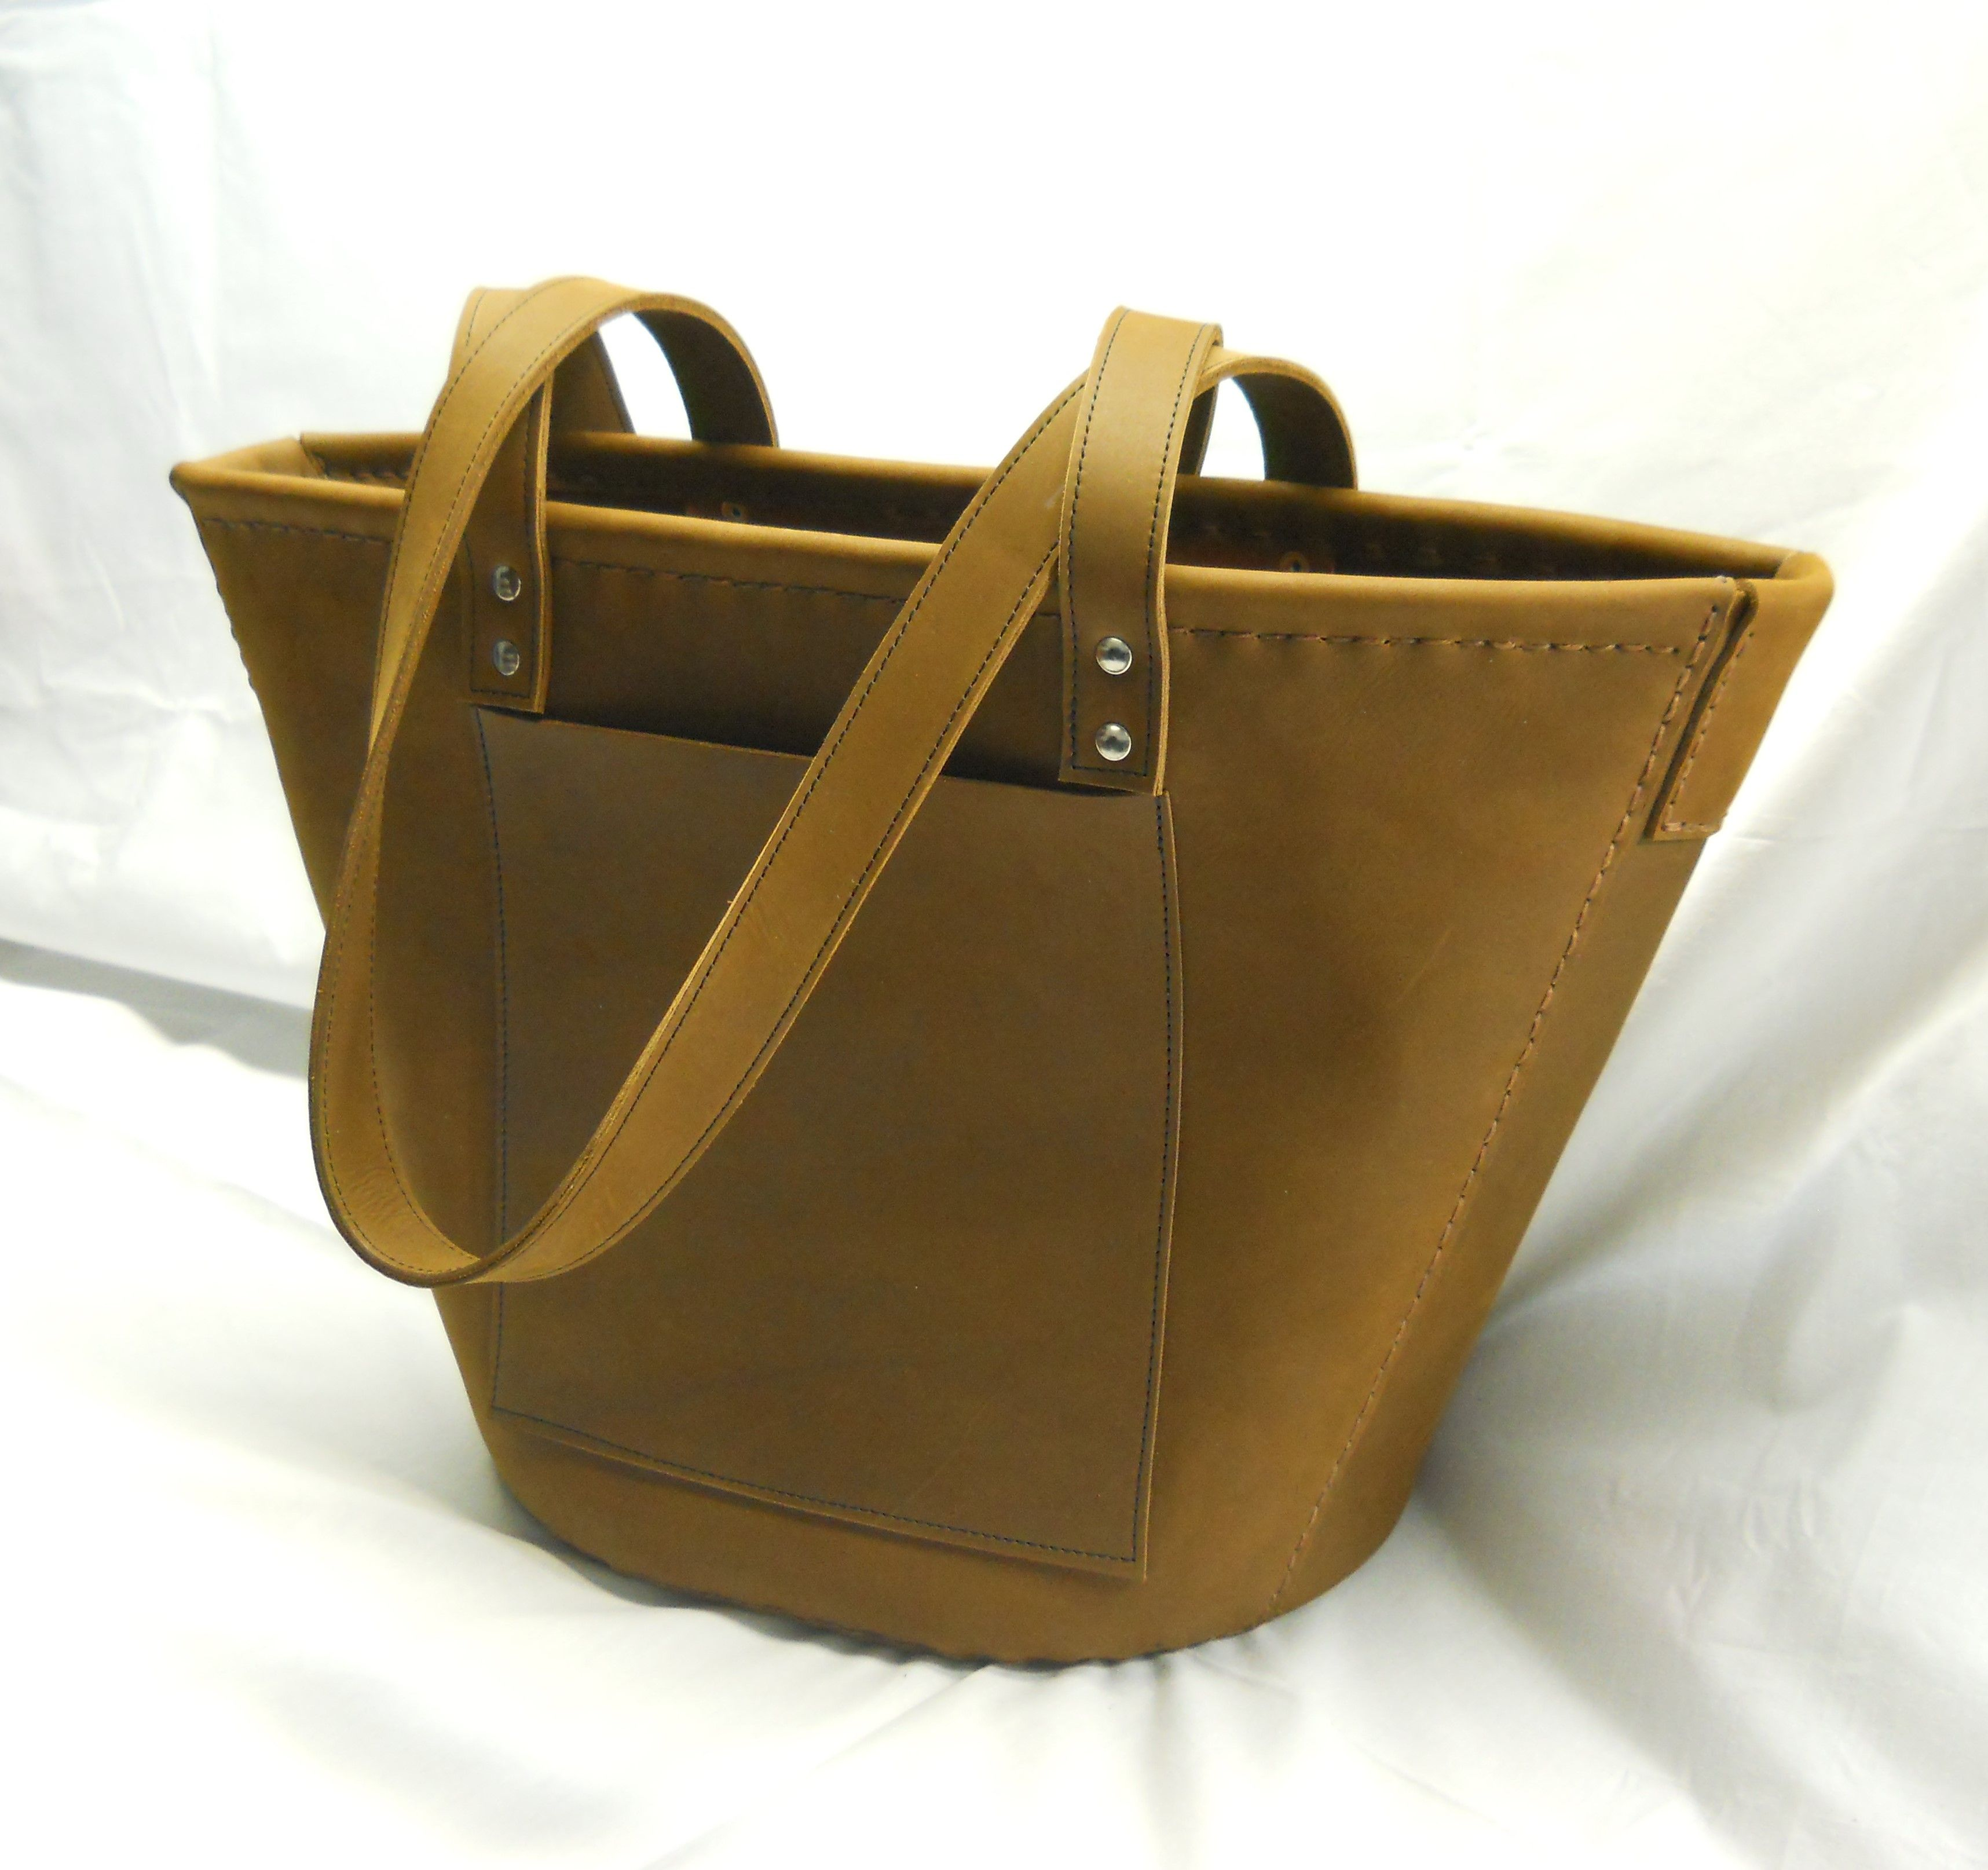 2626f6eb6d This is a FEATURED PRODUCT at Awl Made Here  The Juny Tote A great every